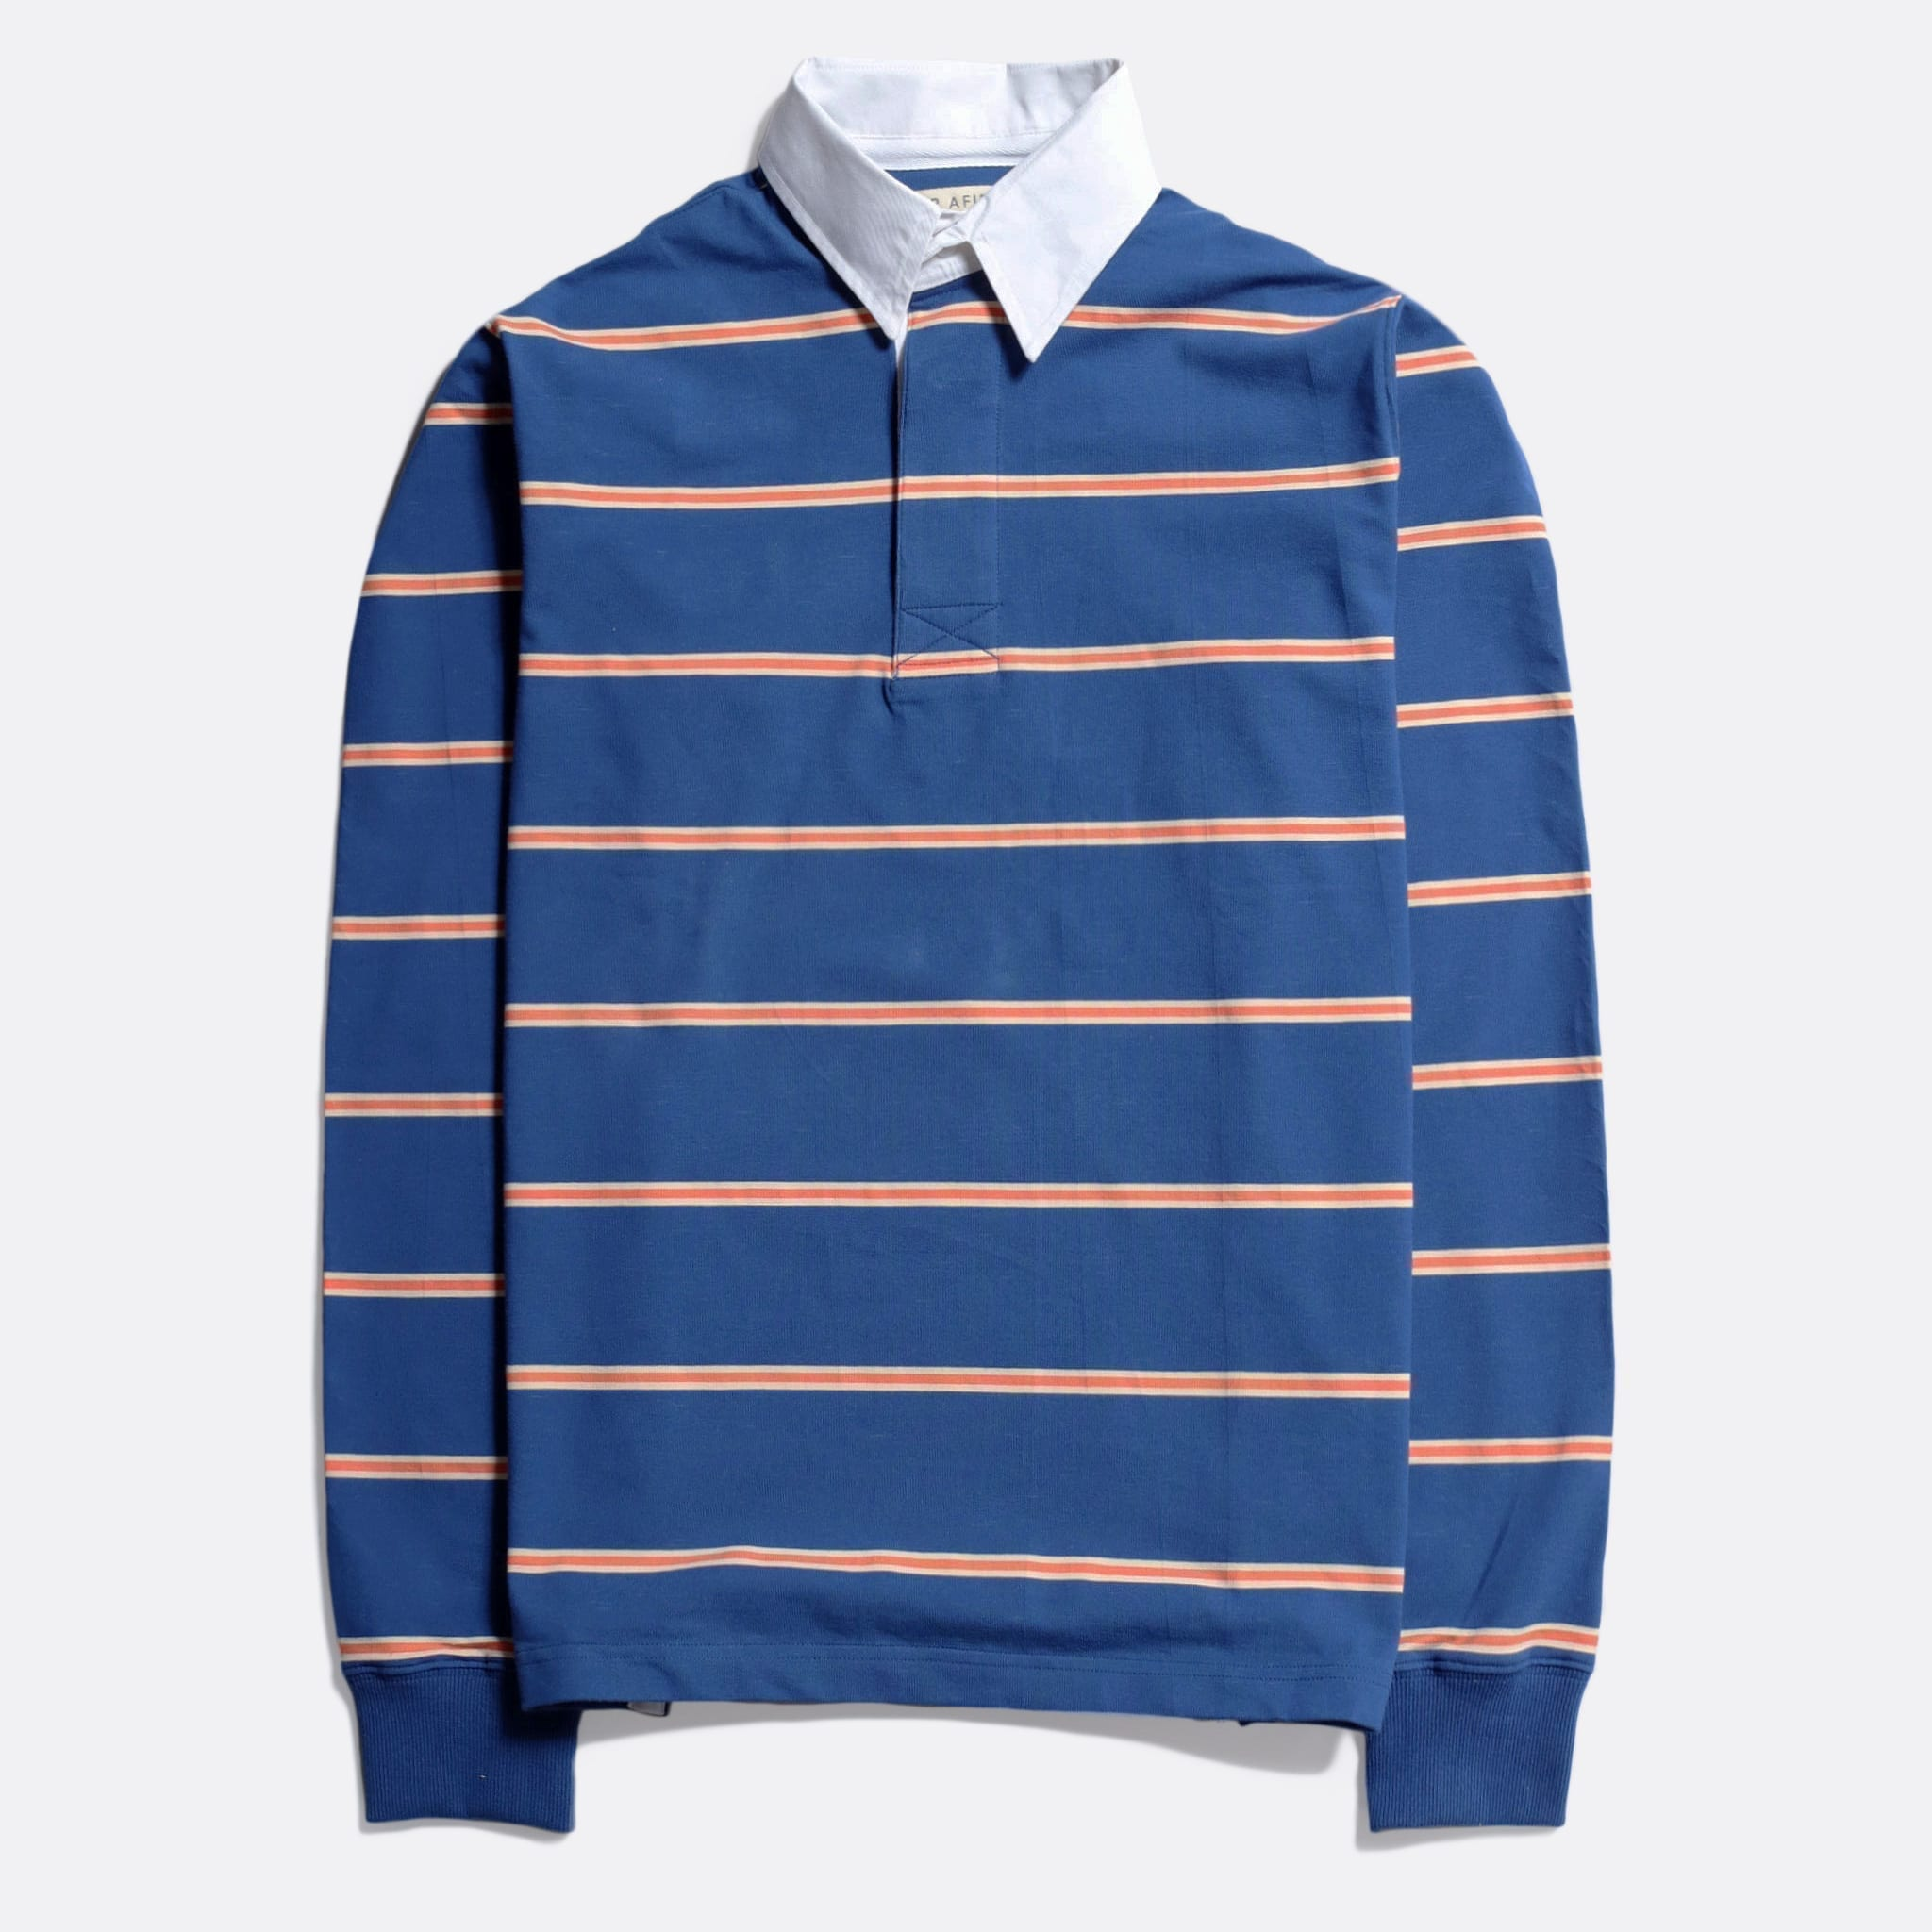 Far Afield Benito Rugby Shirt a Optic Stripe Ensign Blue BCI Cotton FabricHeritage Inspired